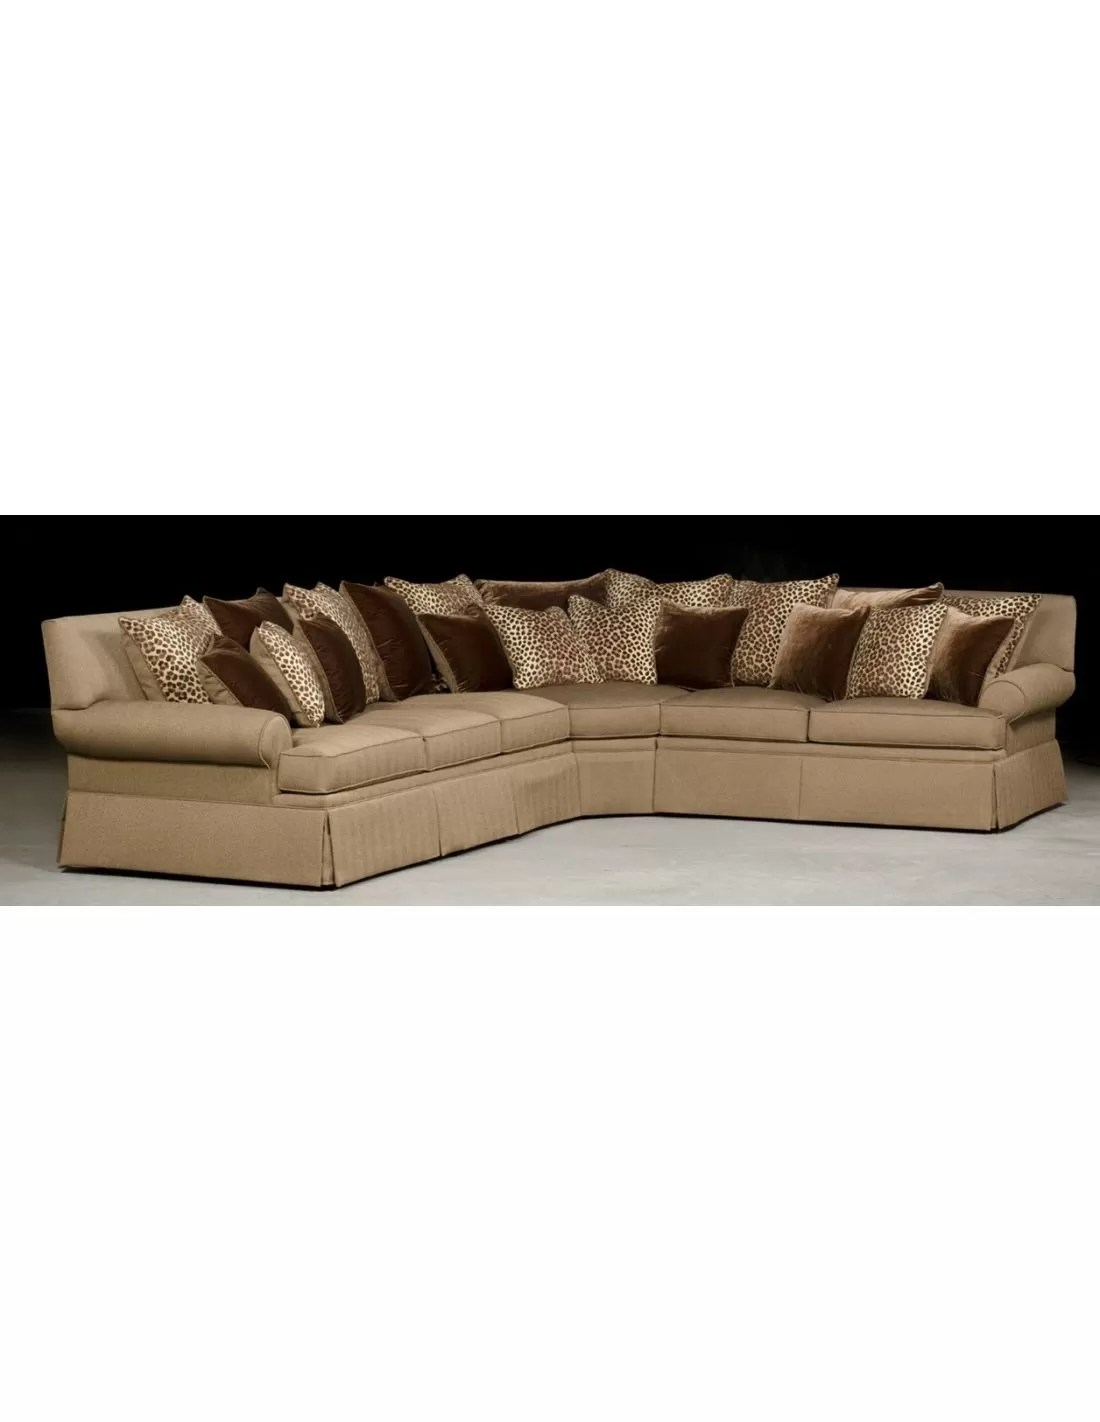 Best Value Grand Sectional Sofa